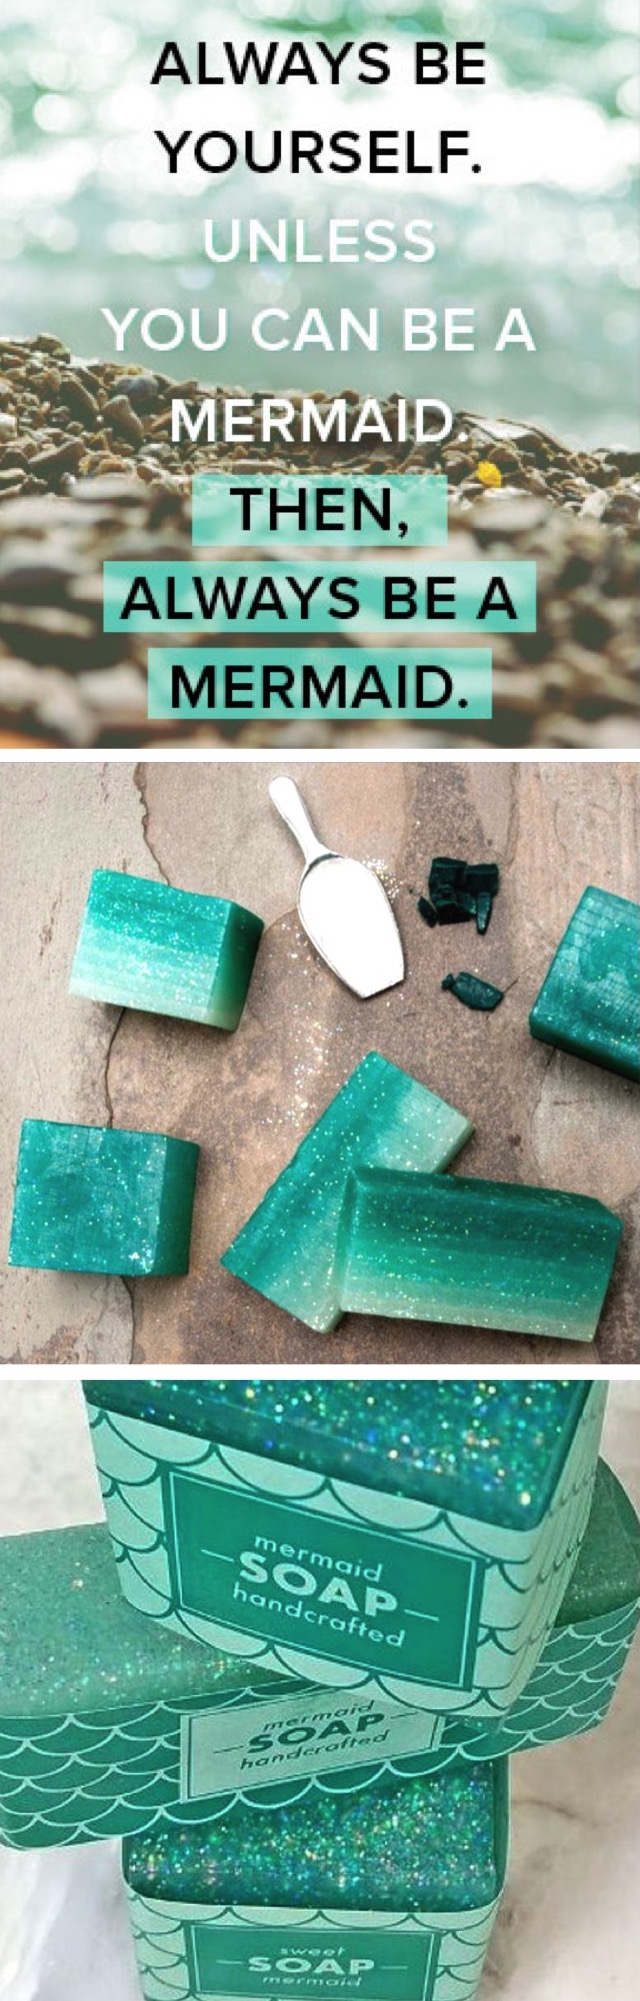 Handcrafted Mermaid Ombre Soap DIY Kit Creative And Quirky Birthday Gift Ideas